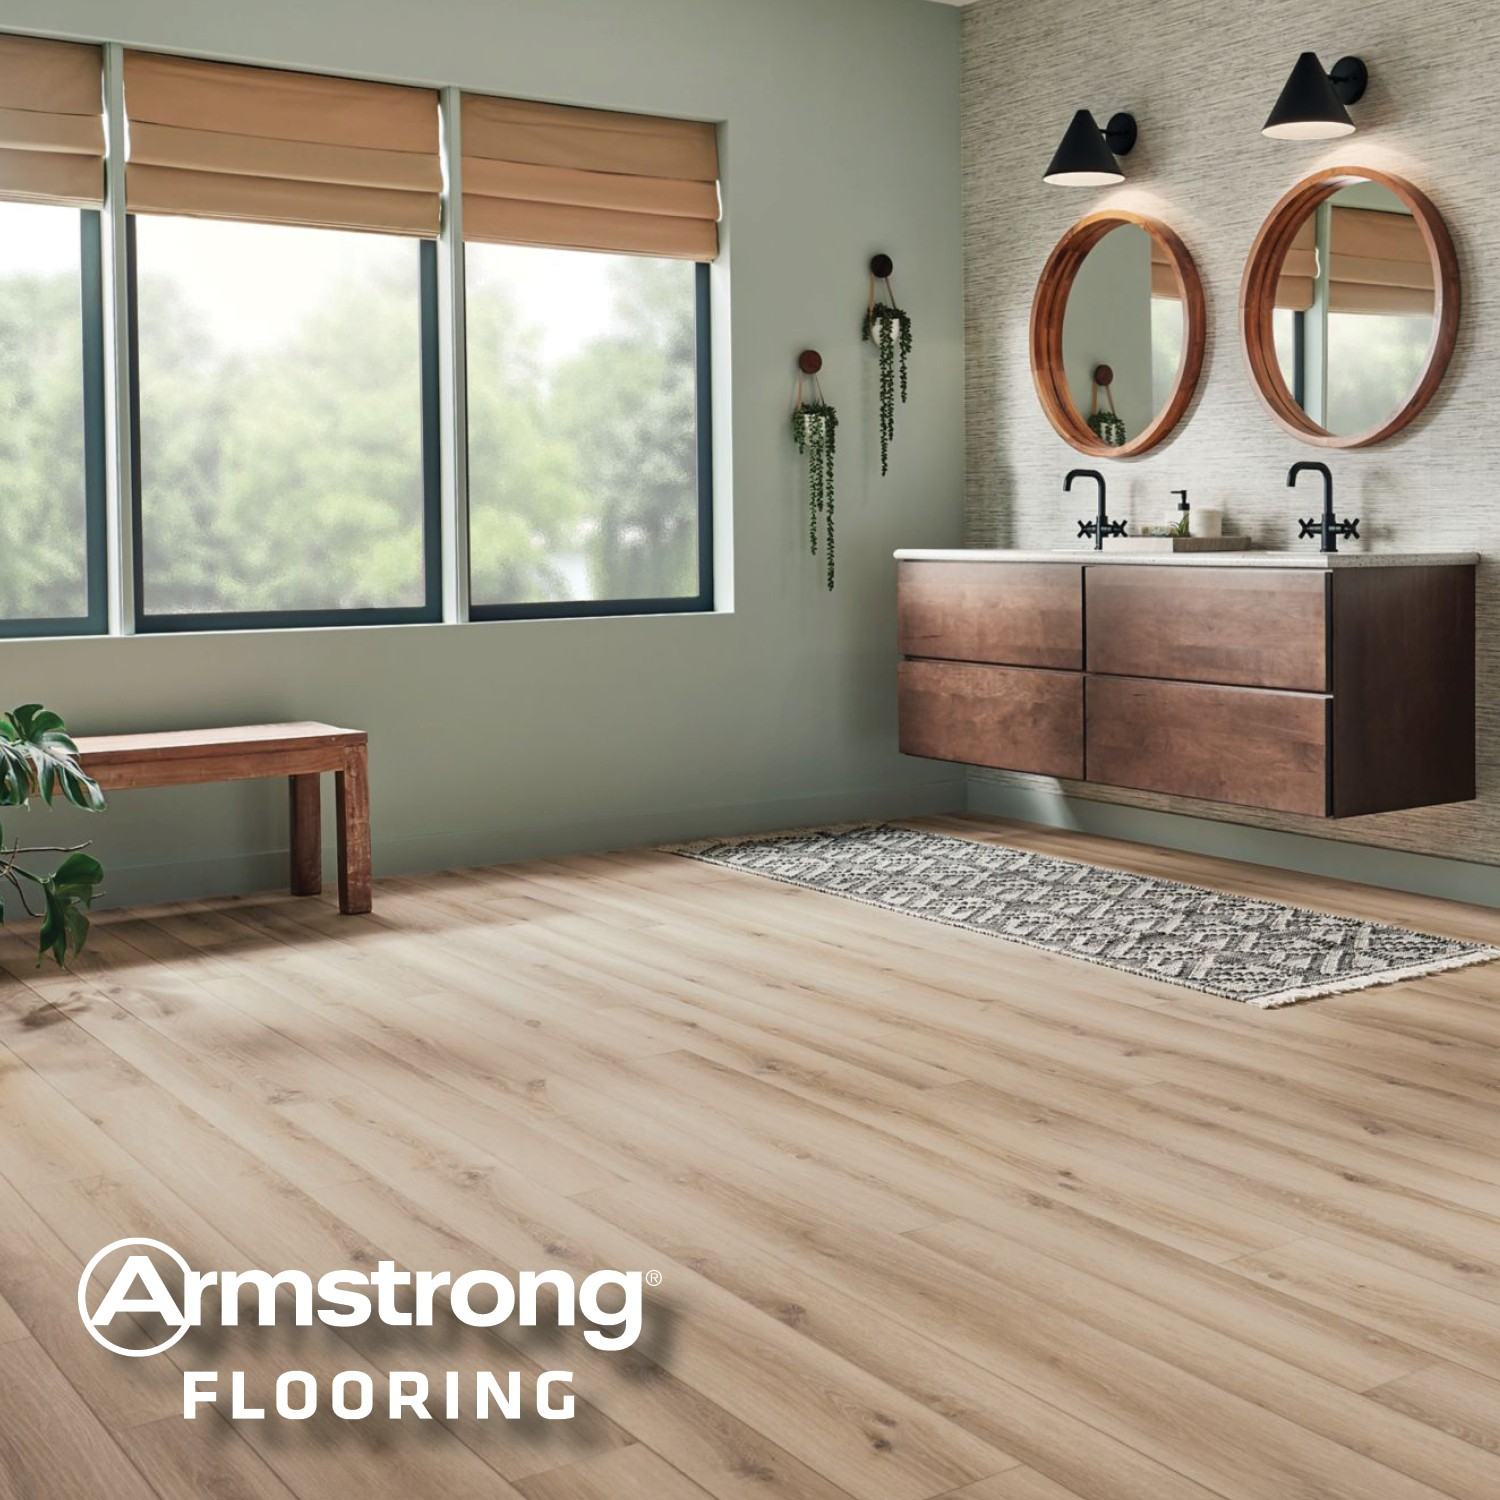 Armstrong Empower | McSwain Carpet & Floors